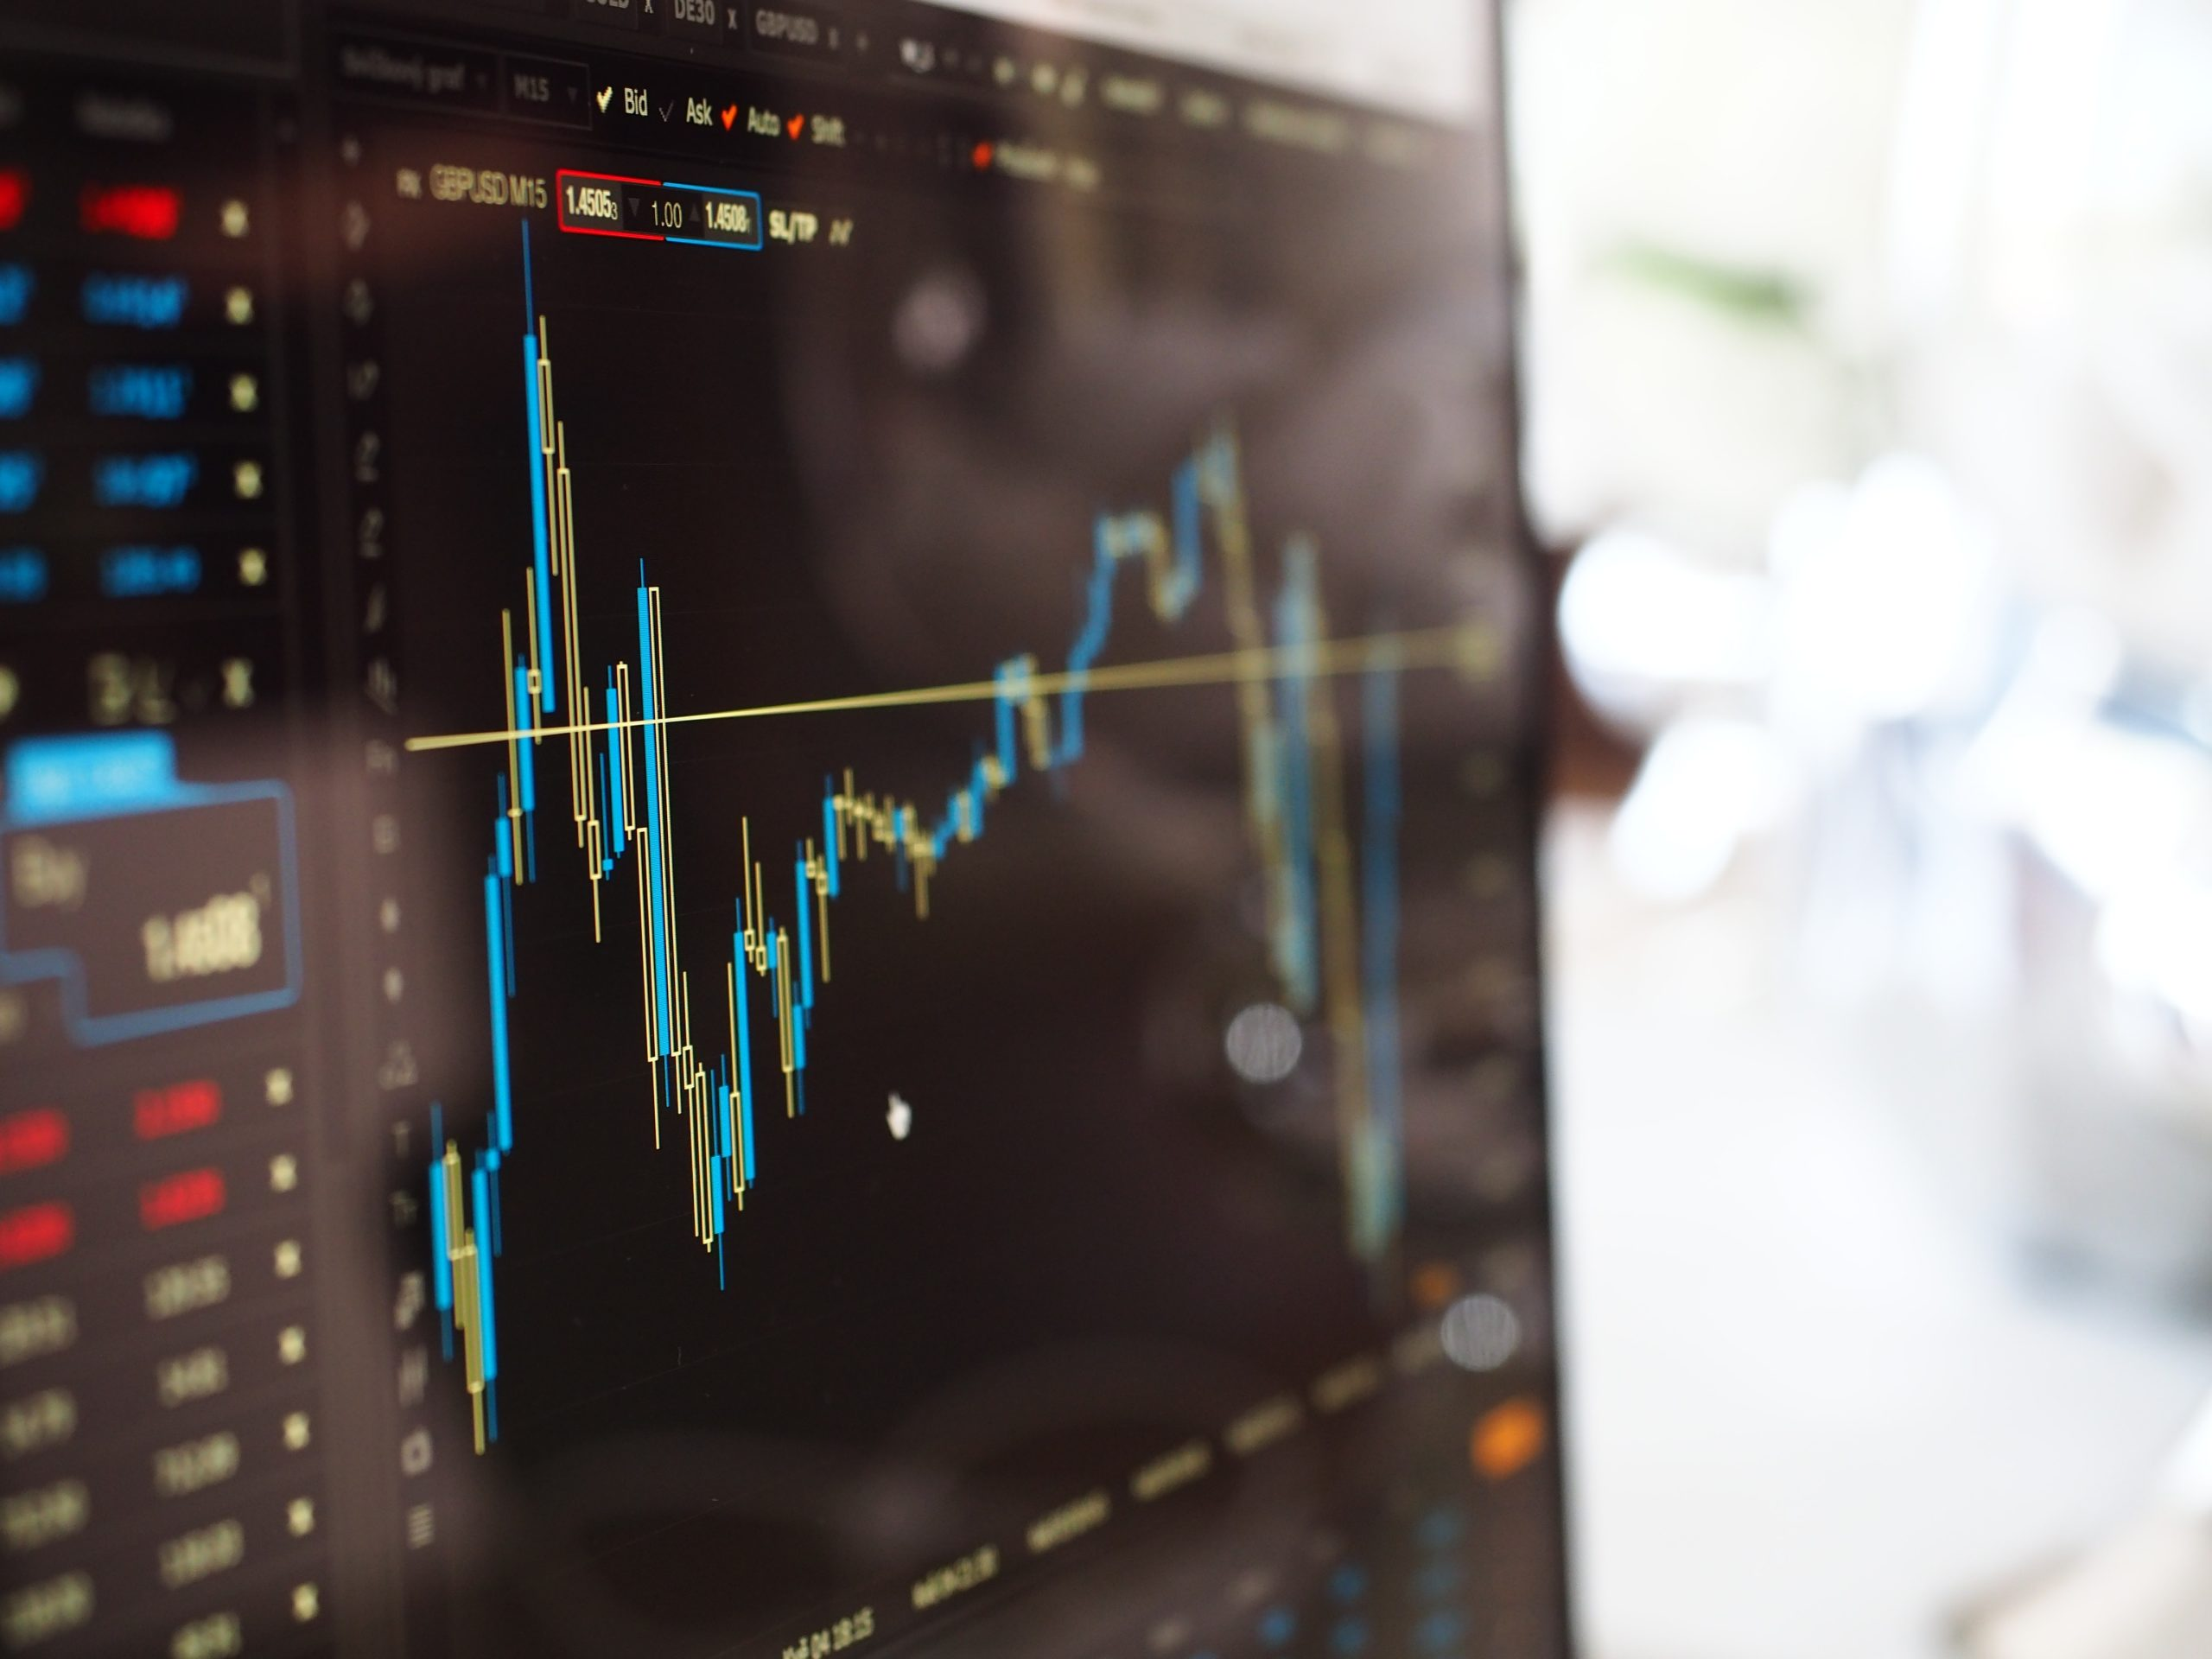 Impact of COVID-19 on the Indian BFSI sector